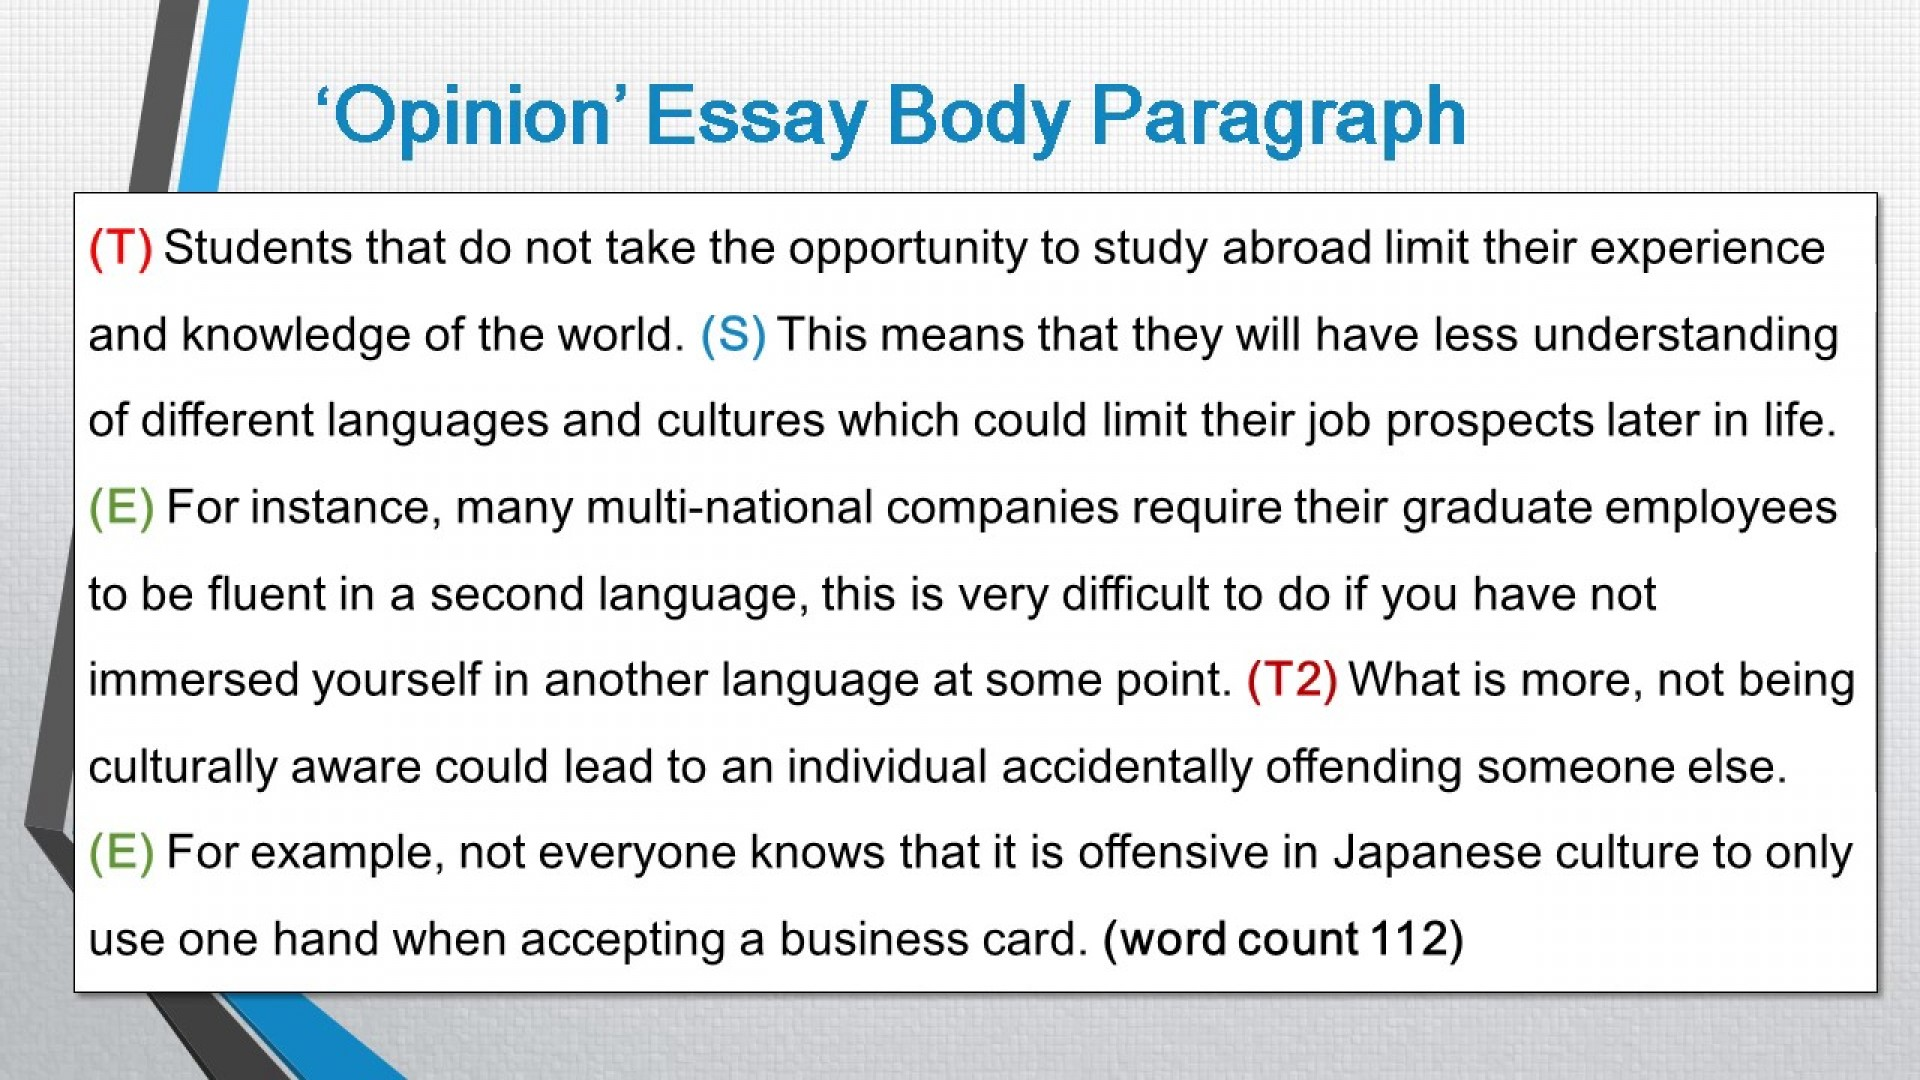 009 Essay Example Paragraph Magnificent 2 Topics About Friendship Graphic Organizer 1920